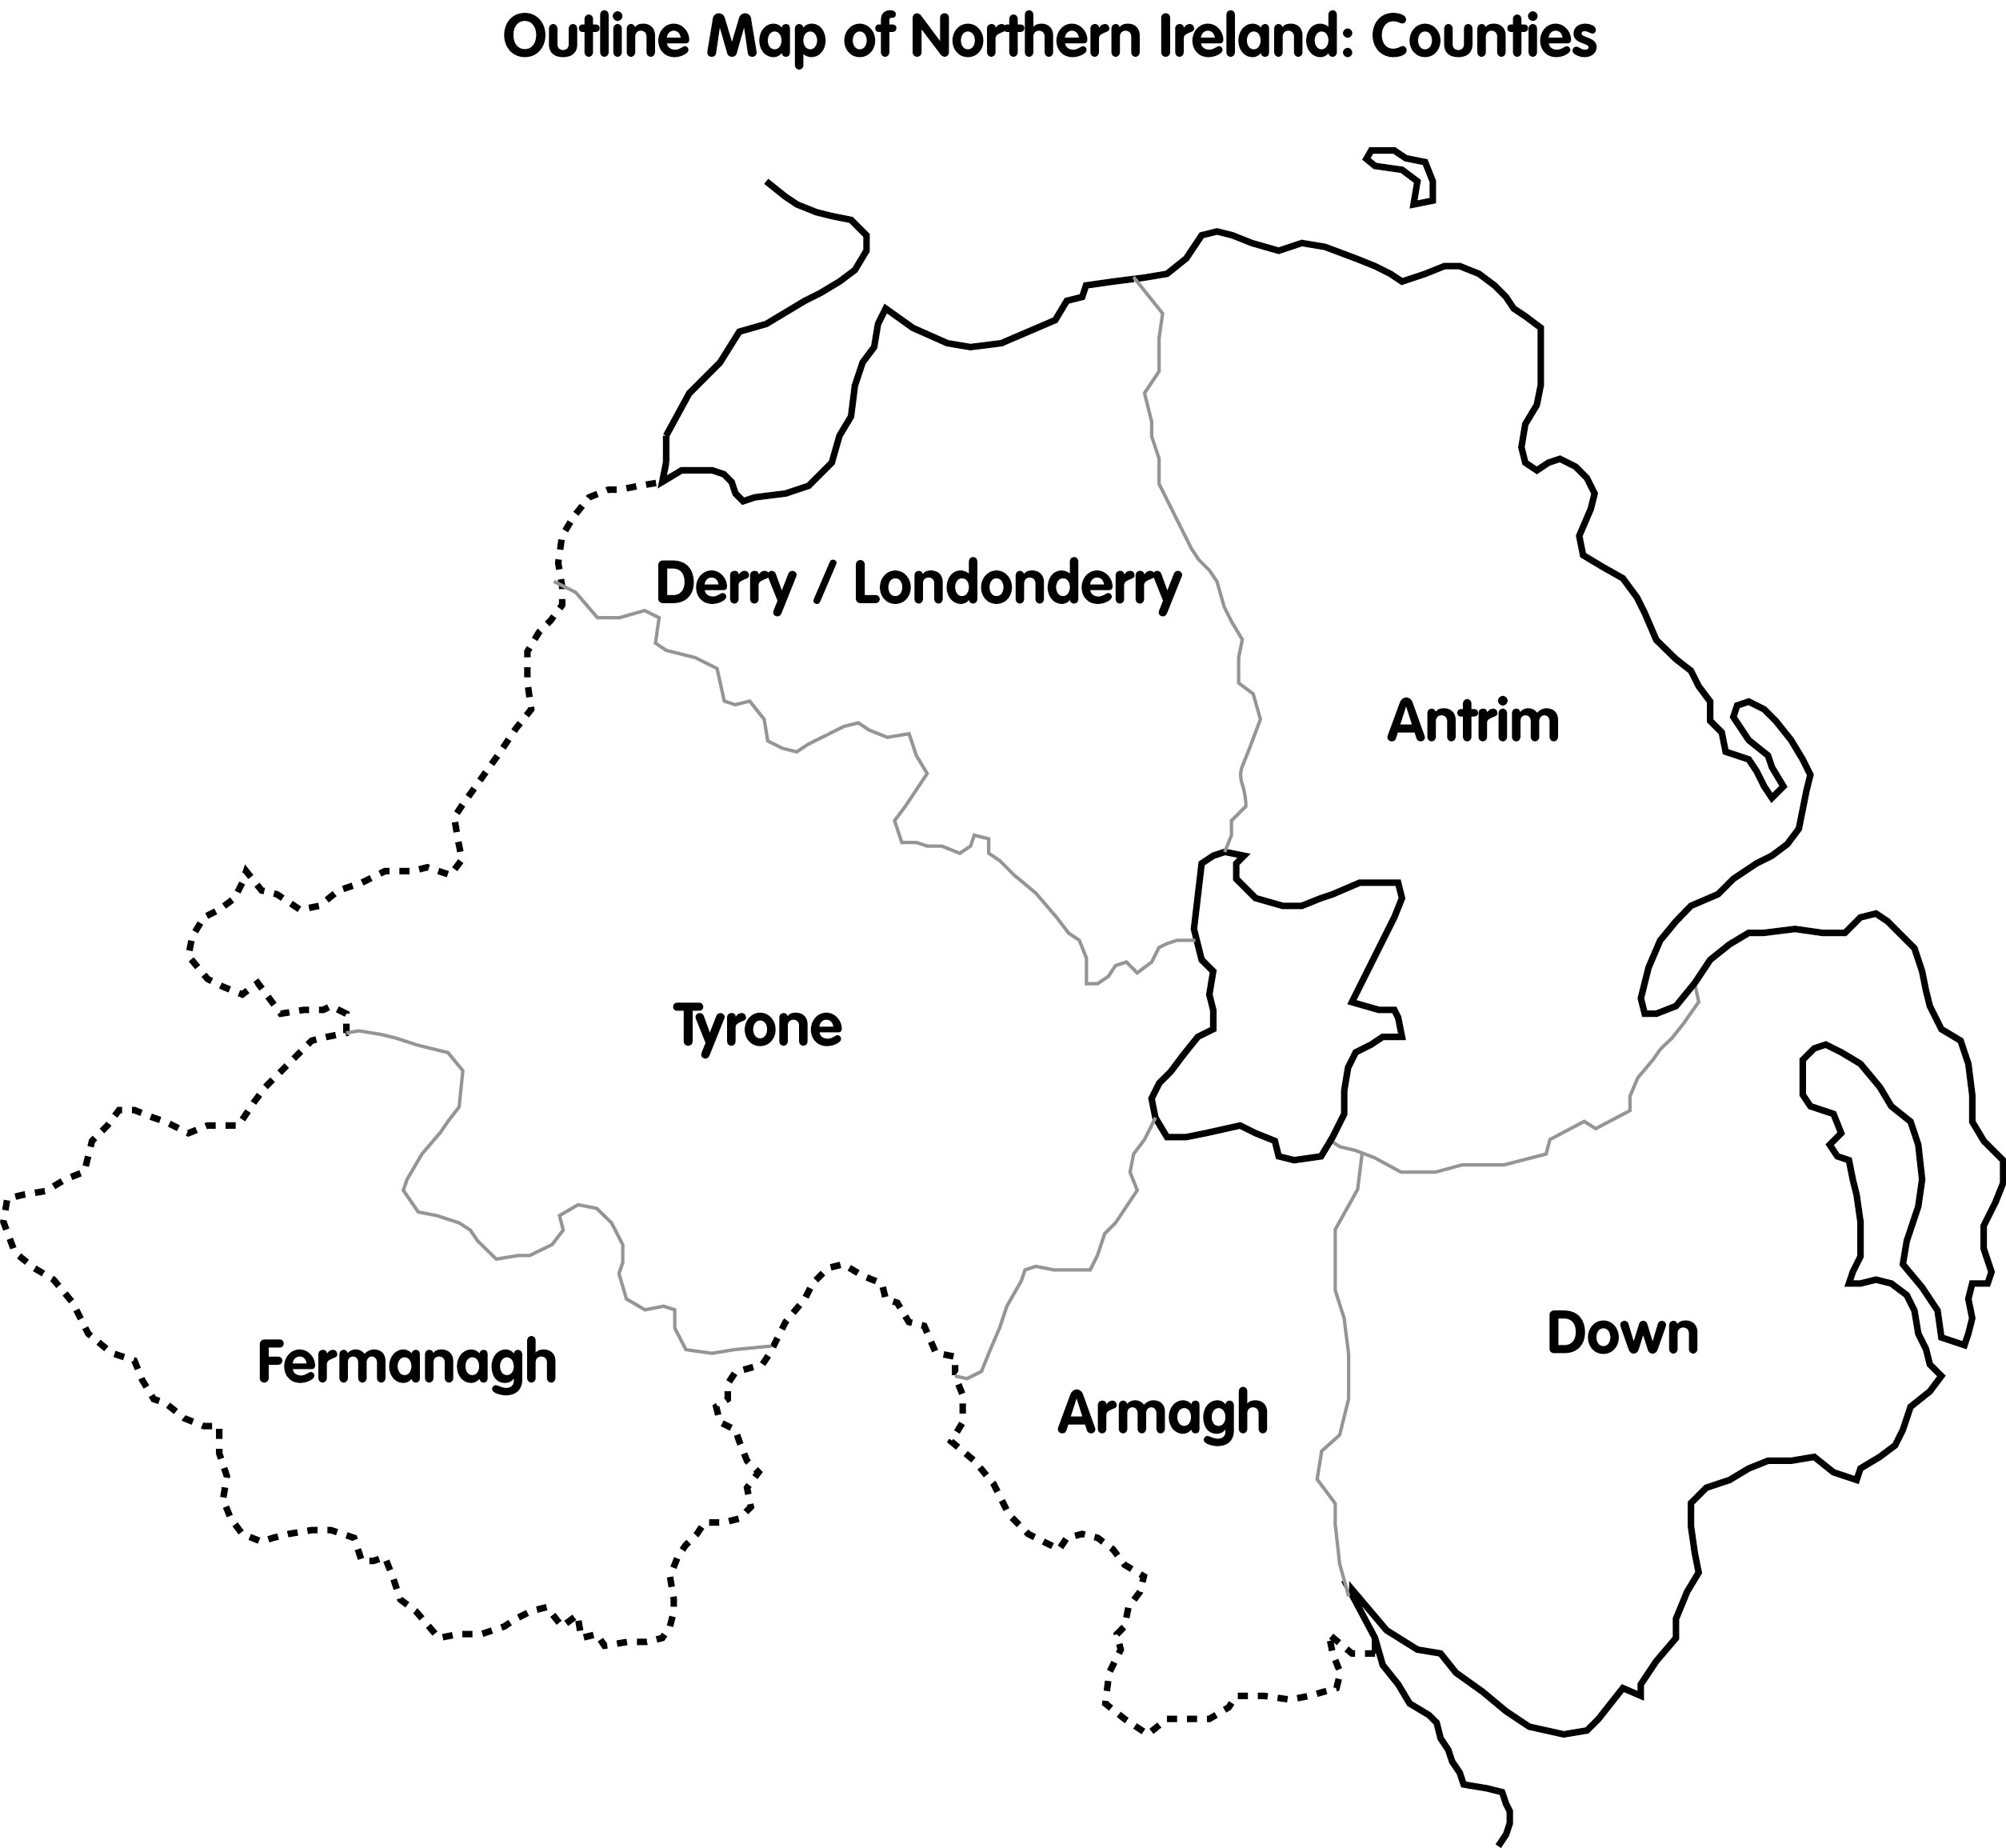 Map Of Counties Of Northern Ireland.Cain Maps Outline Map Of Northern Ireland Counties